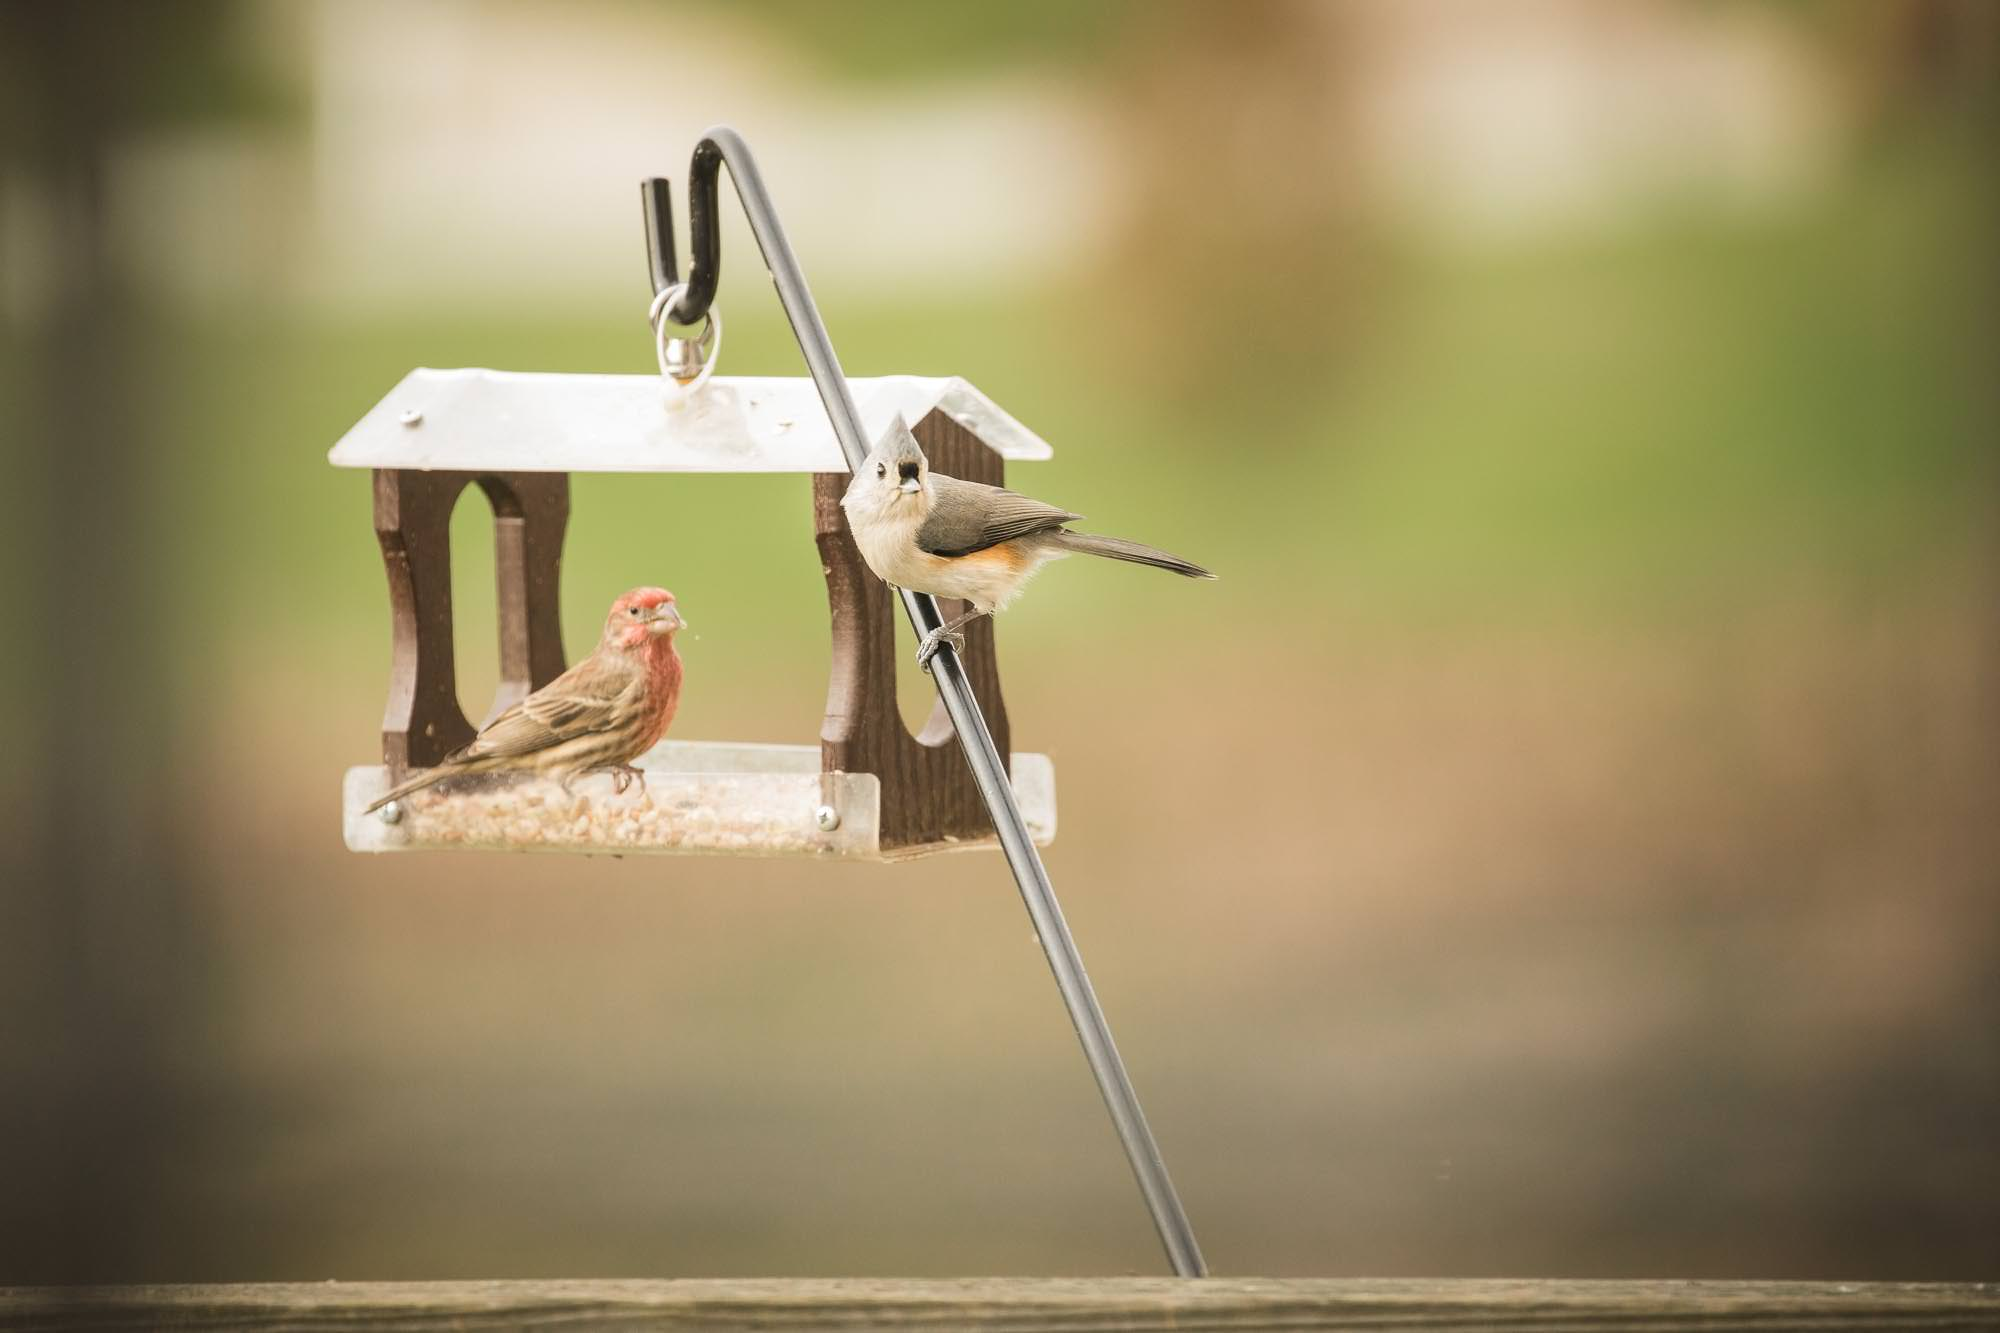 House finch and tufted titmouse at feeder